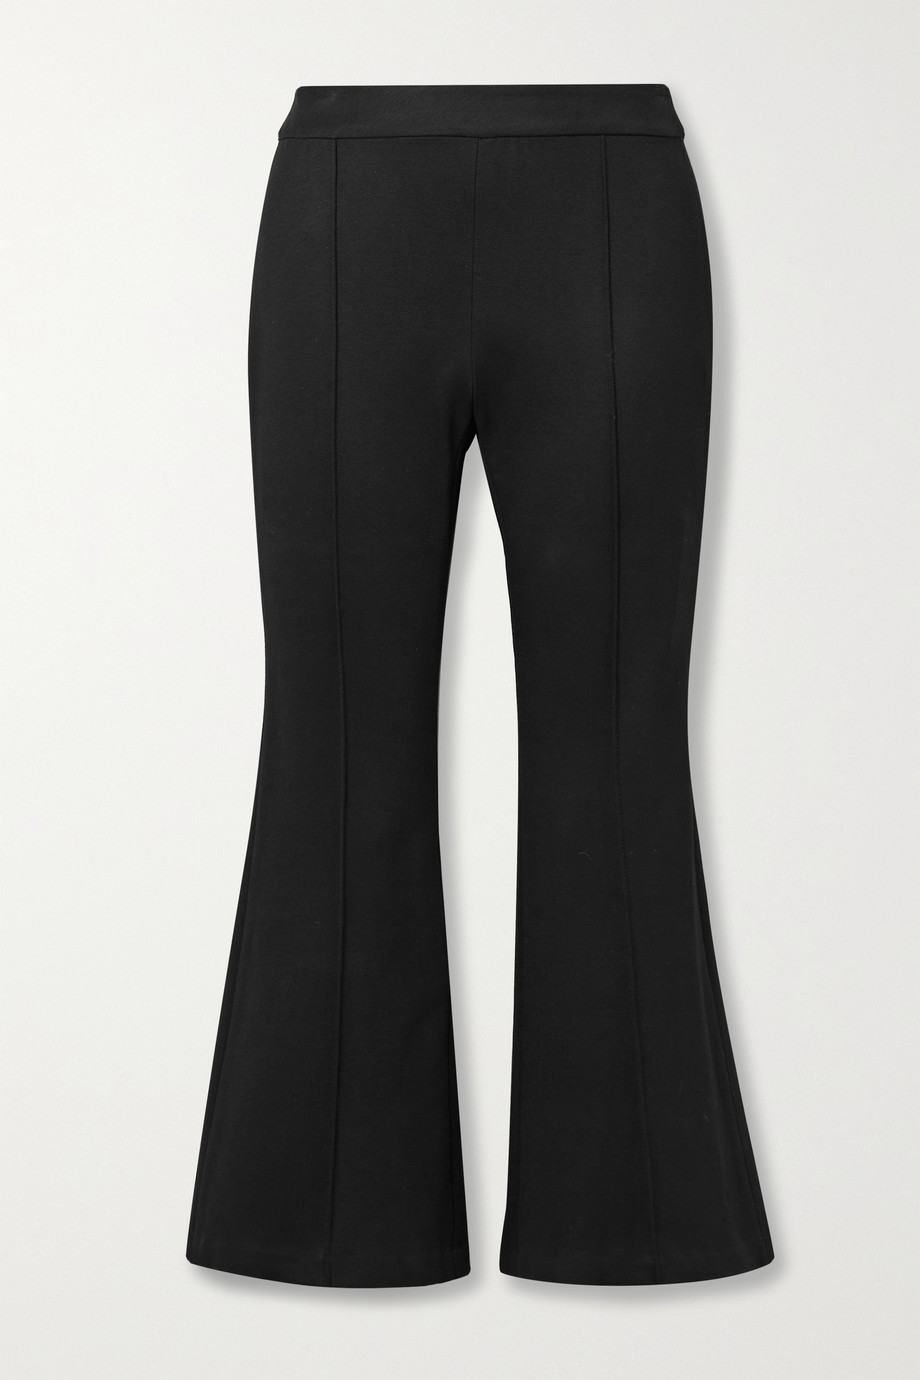 Rosetta Getty Cropped stretch-ponte flared pants